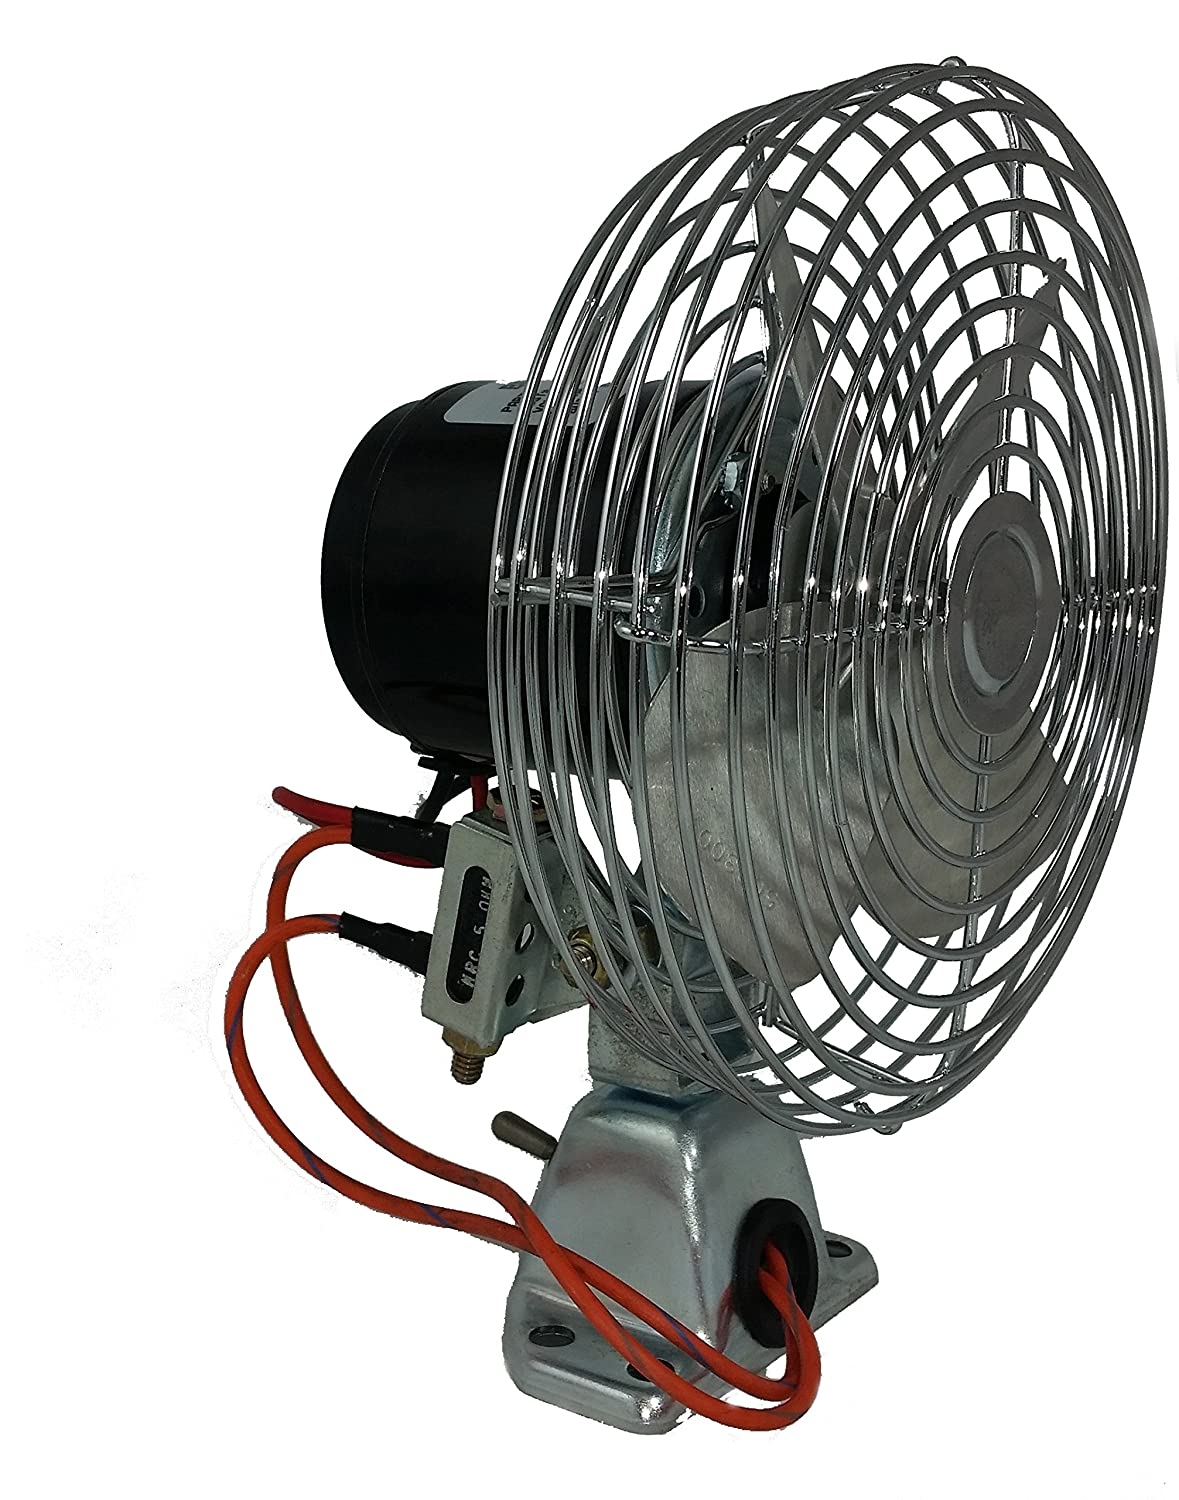 SM24HD 24 Volt Dc Heavy Duty Retro-fit Cab Fan BERGSTROM